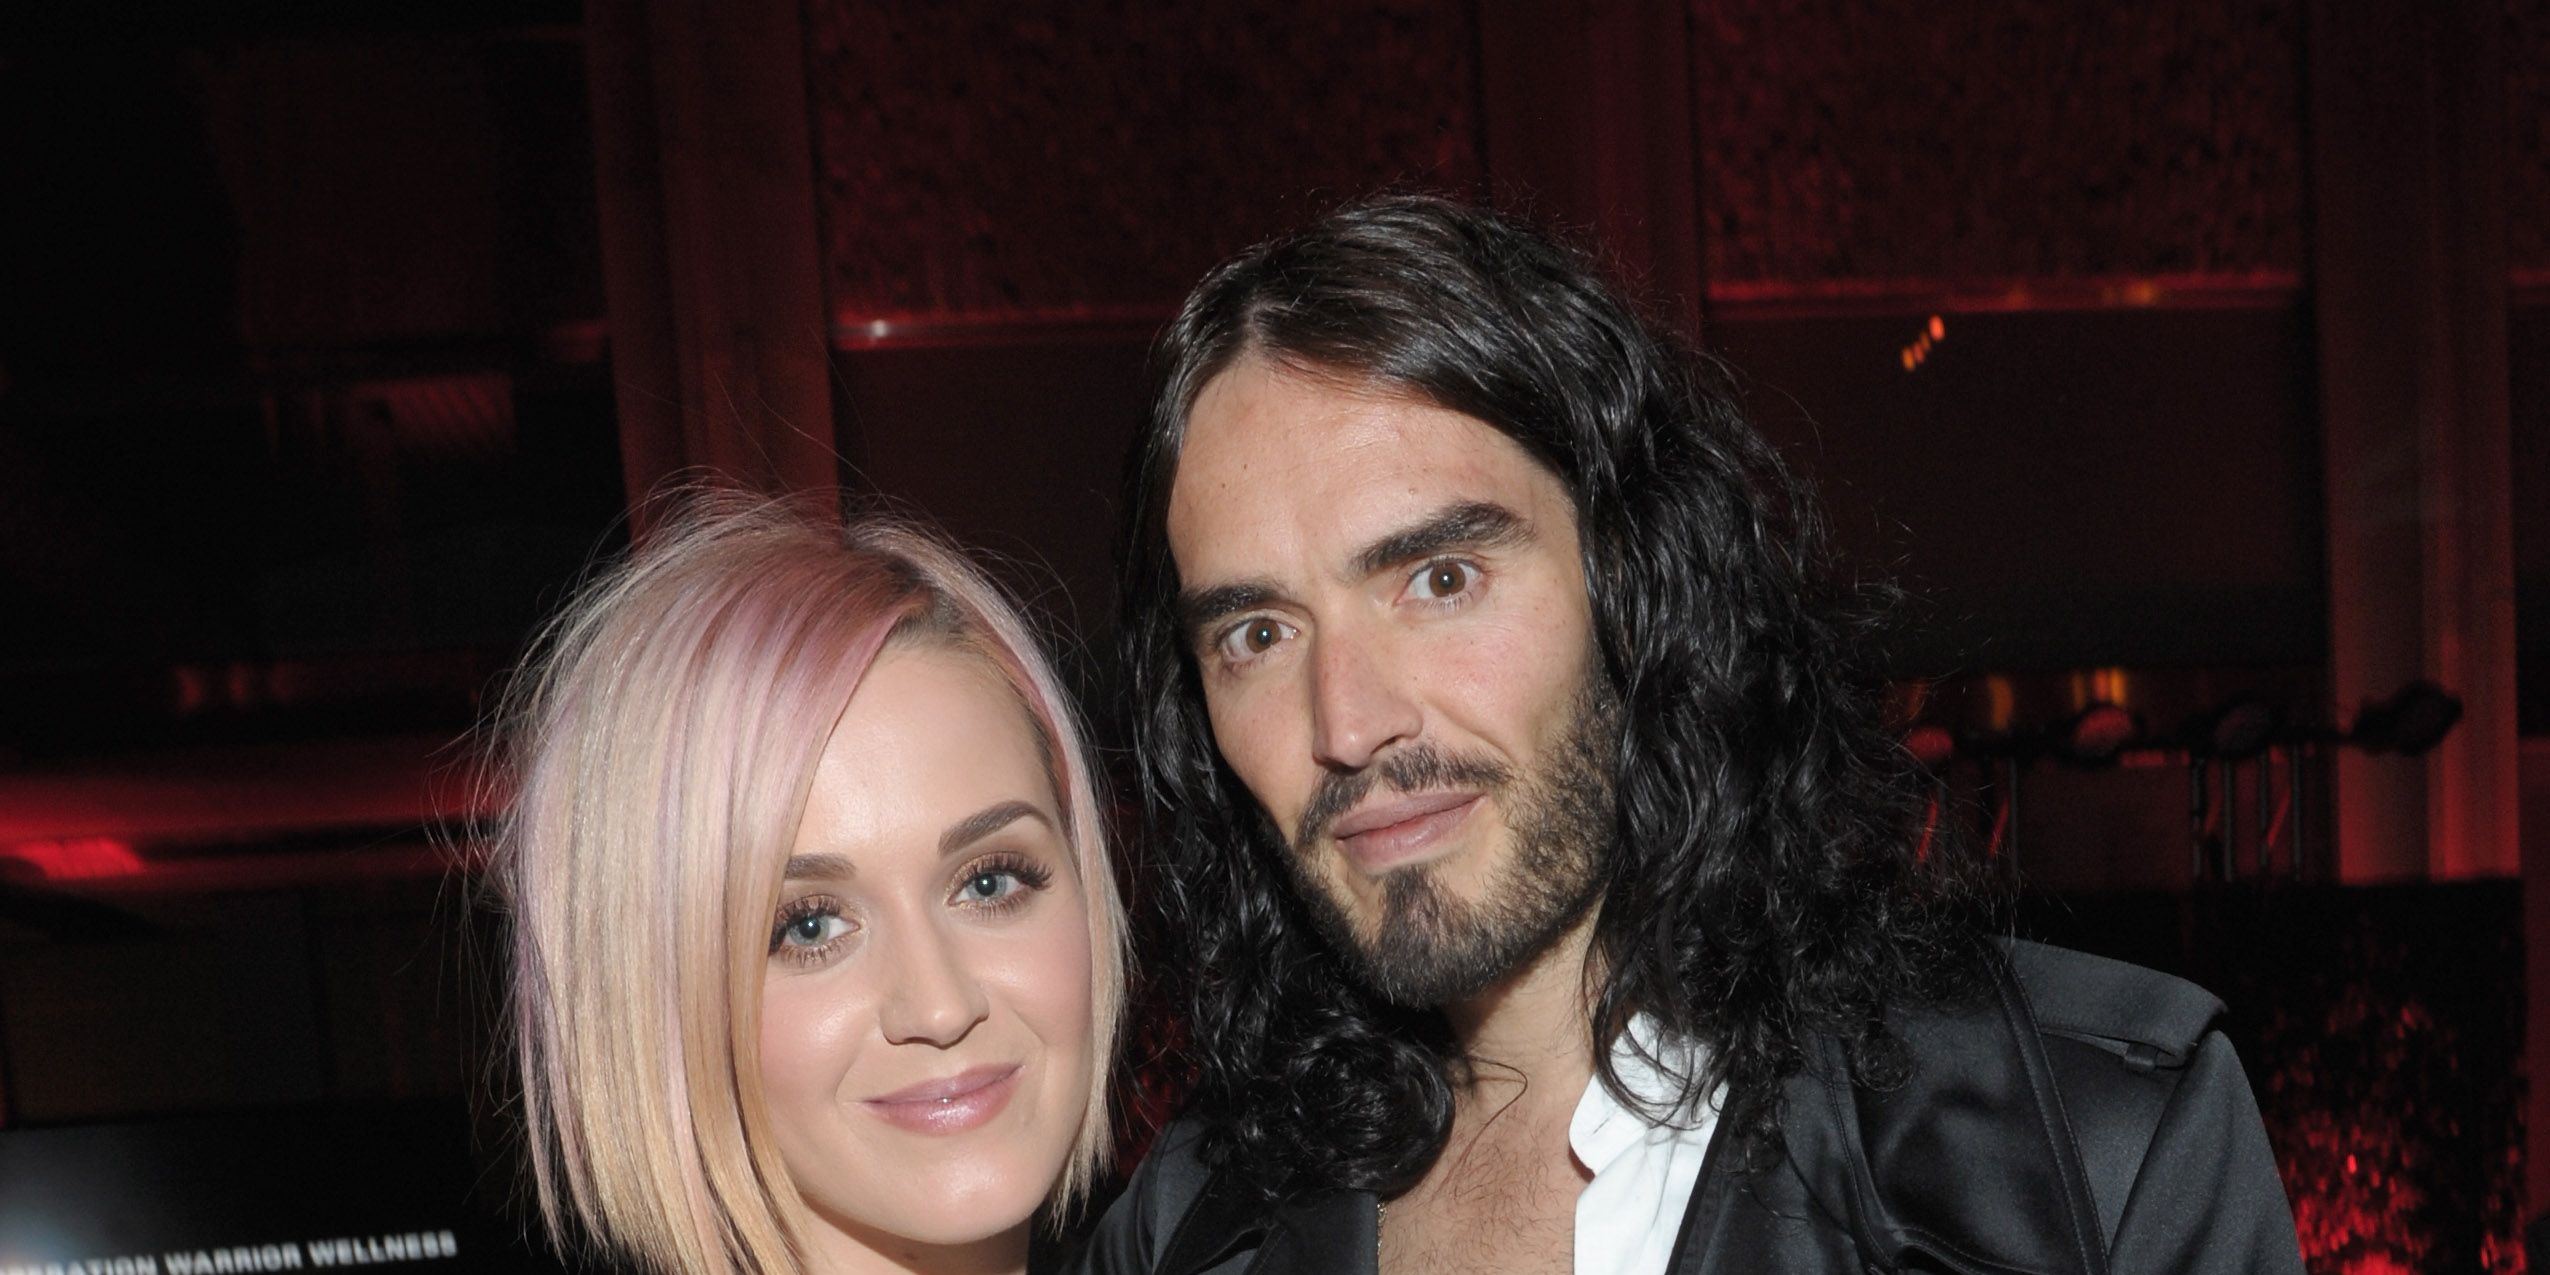 LOS ANGELES, CA - DECEMBER 03: Singer Katy Perry (L) and actor Russell Brand attend the 3rd Annual 'Change Begins Within' Benefit Celebration presented by The David Lynch Foundation held at LACMA on December 3, 2011 in Los Angeles, California.